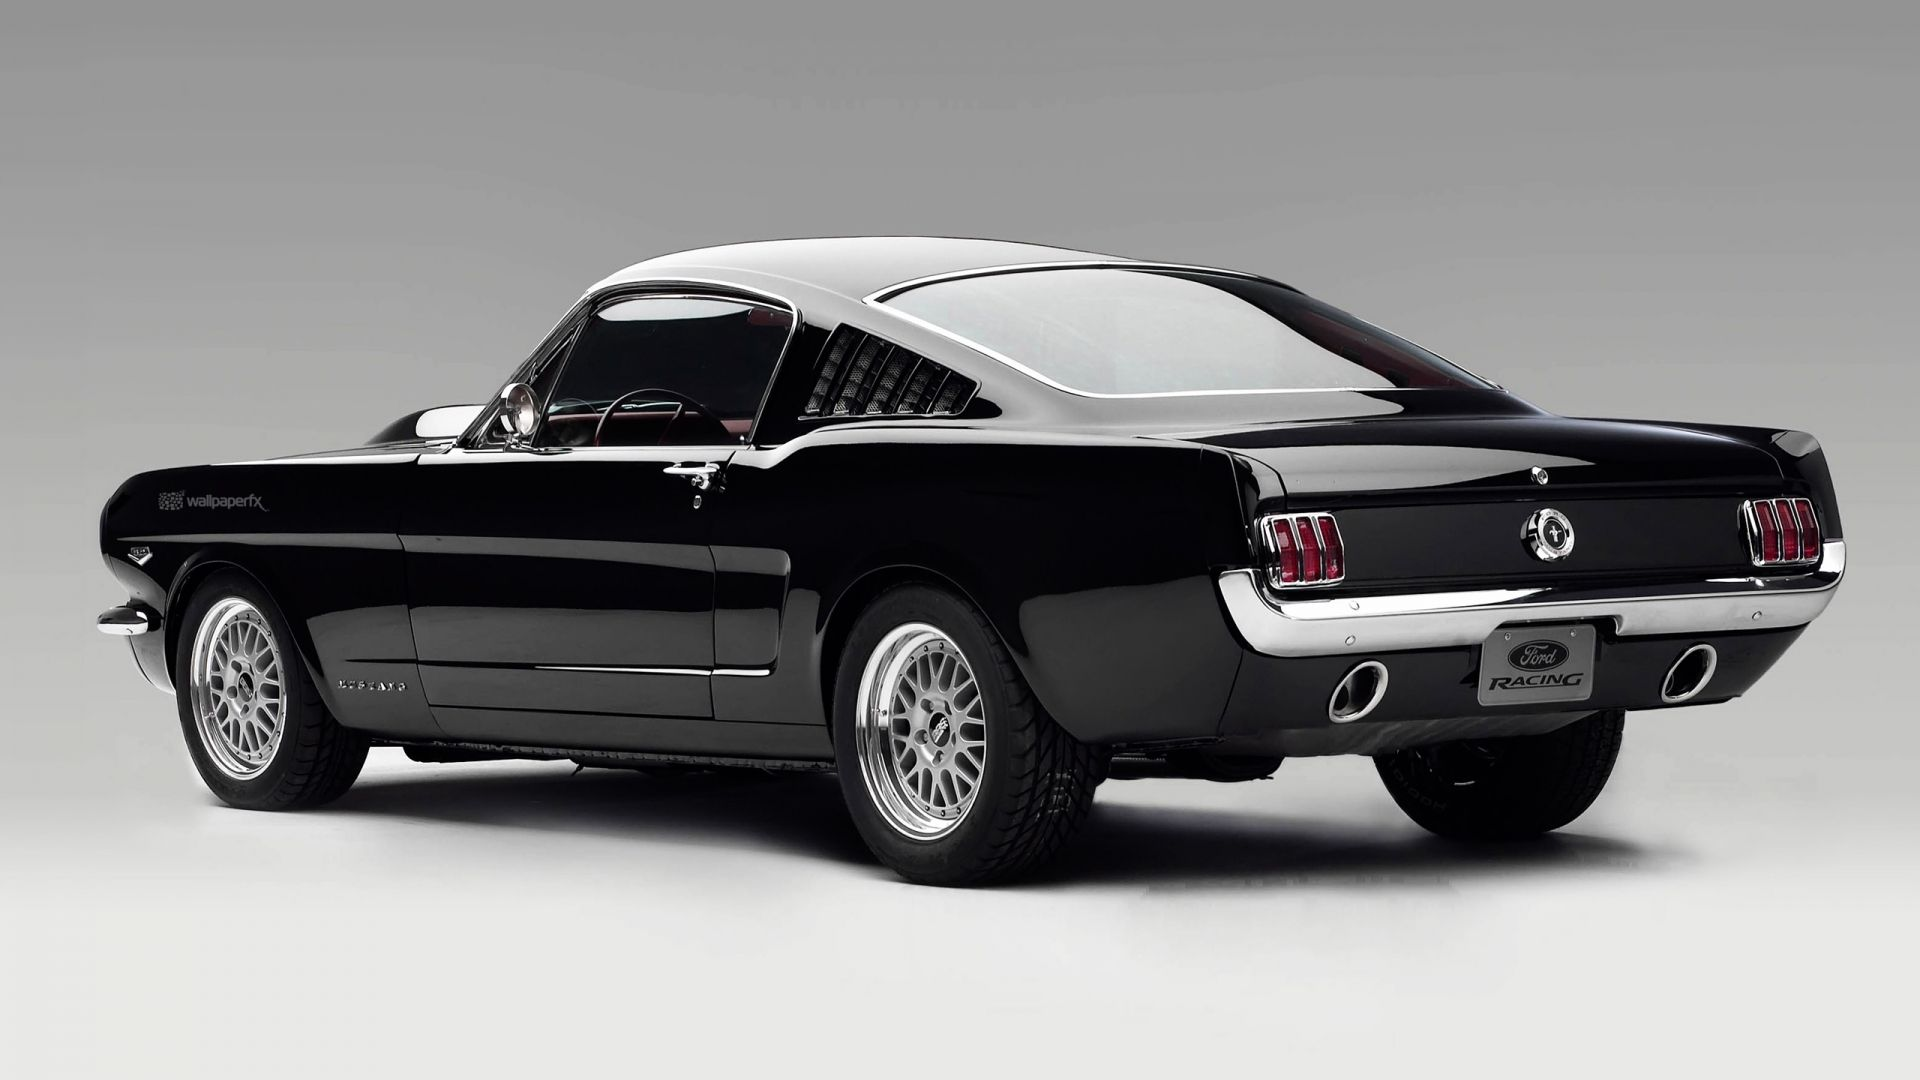 Ford mustang classic car wallpaper | Desktop Backgrounds for Free ...